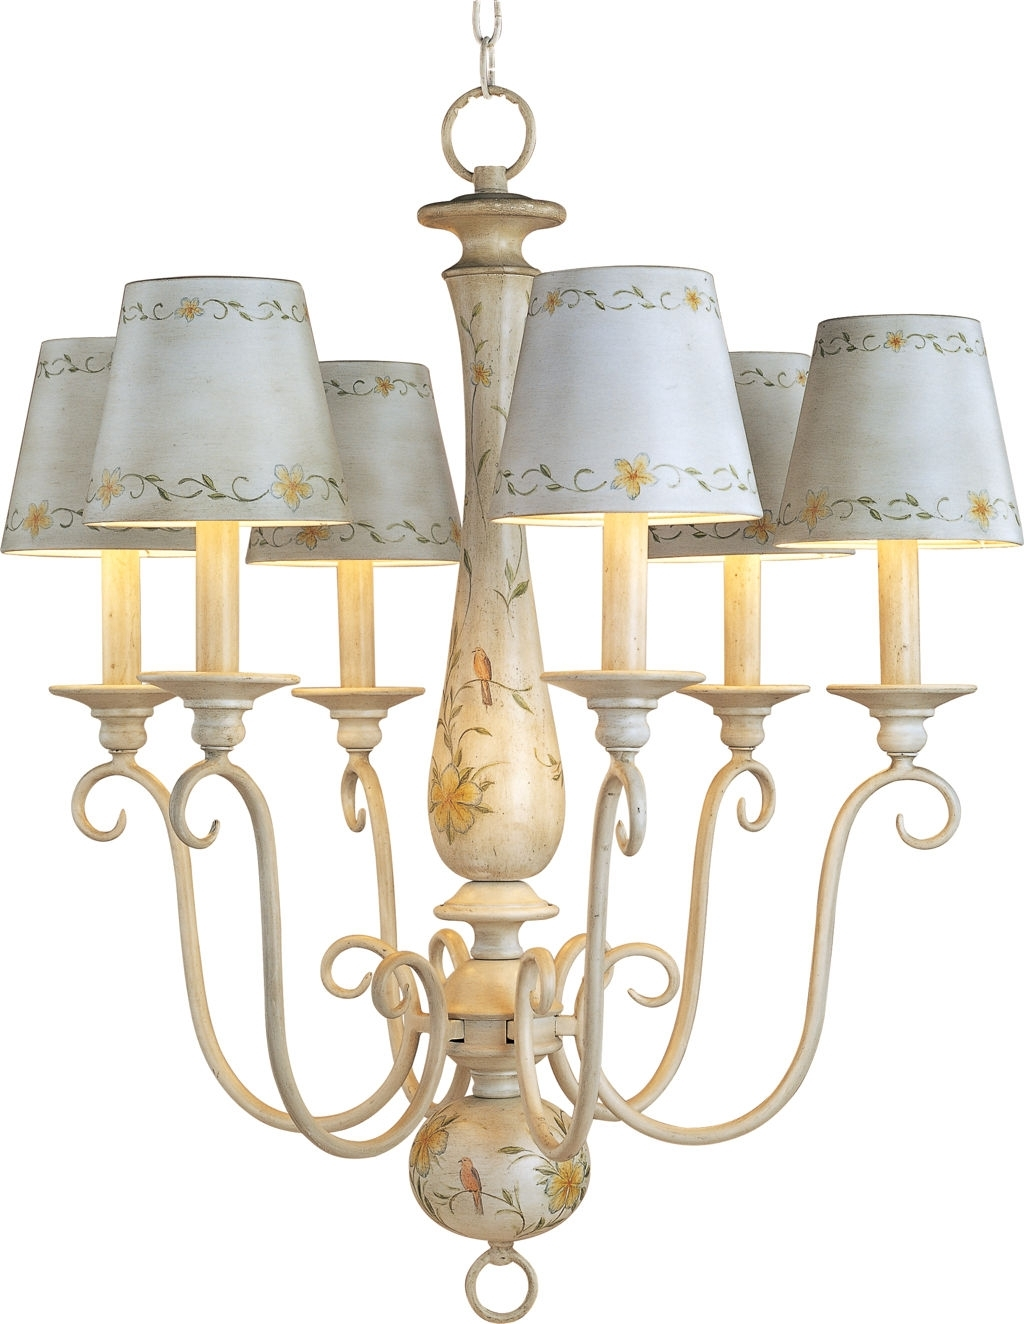 Small White Chandeliers In Most Popular Antique French Country Mini Chandelier With Ceramic Lamp Shades And (View 20 of 20)